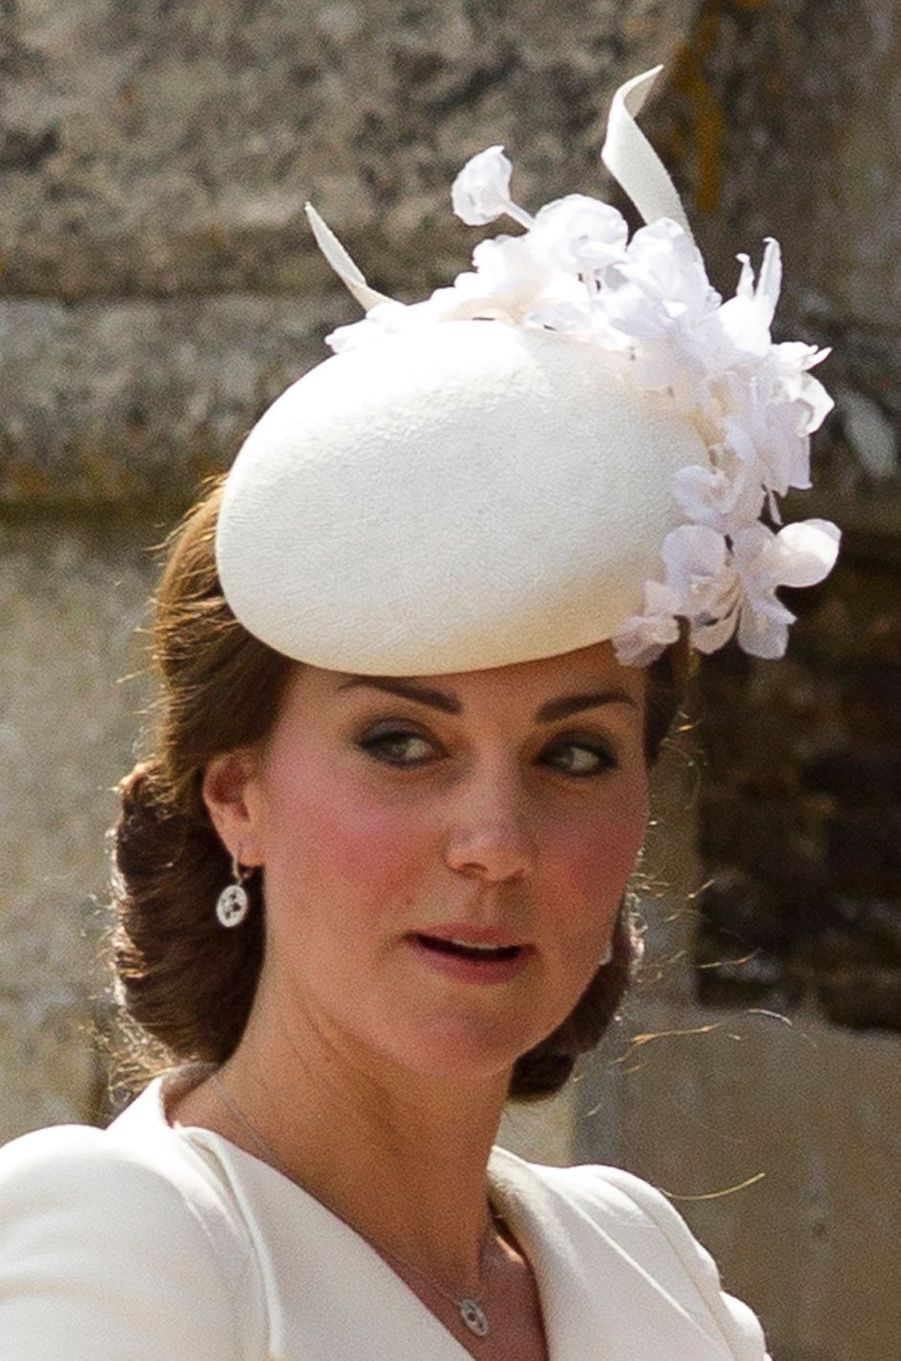 La duchesse de Cambridge, née Kate Middleton, le 5 juillet 2015